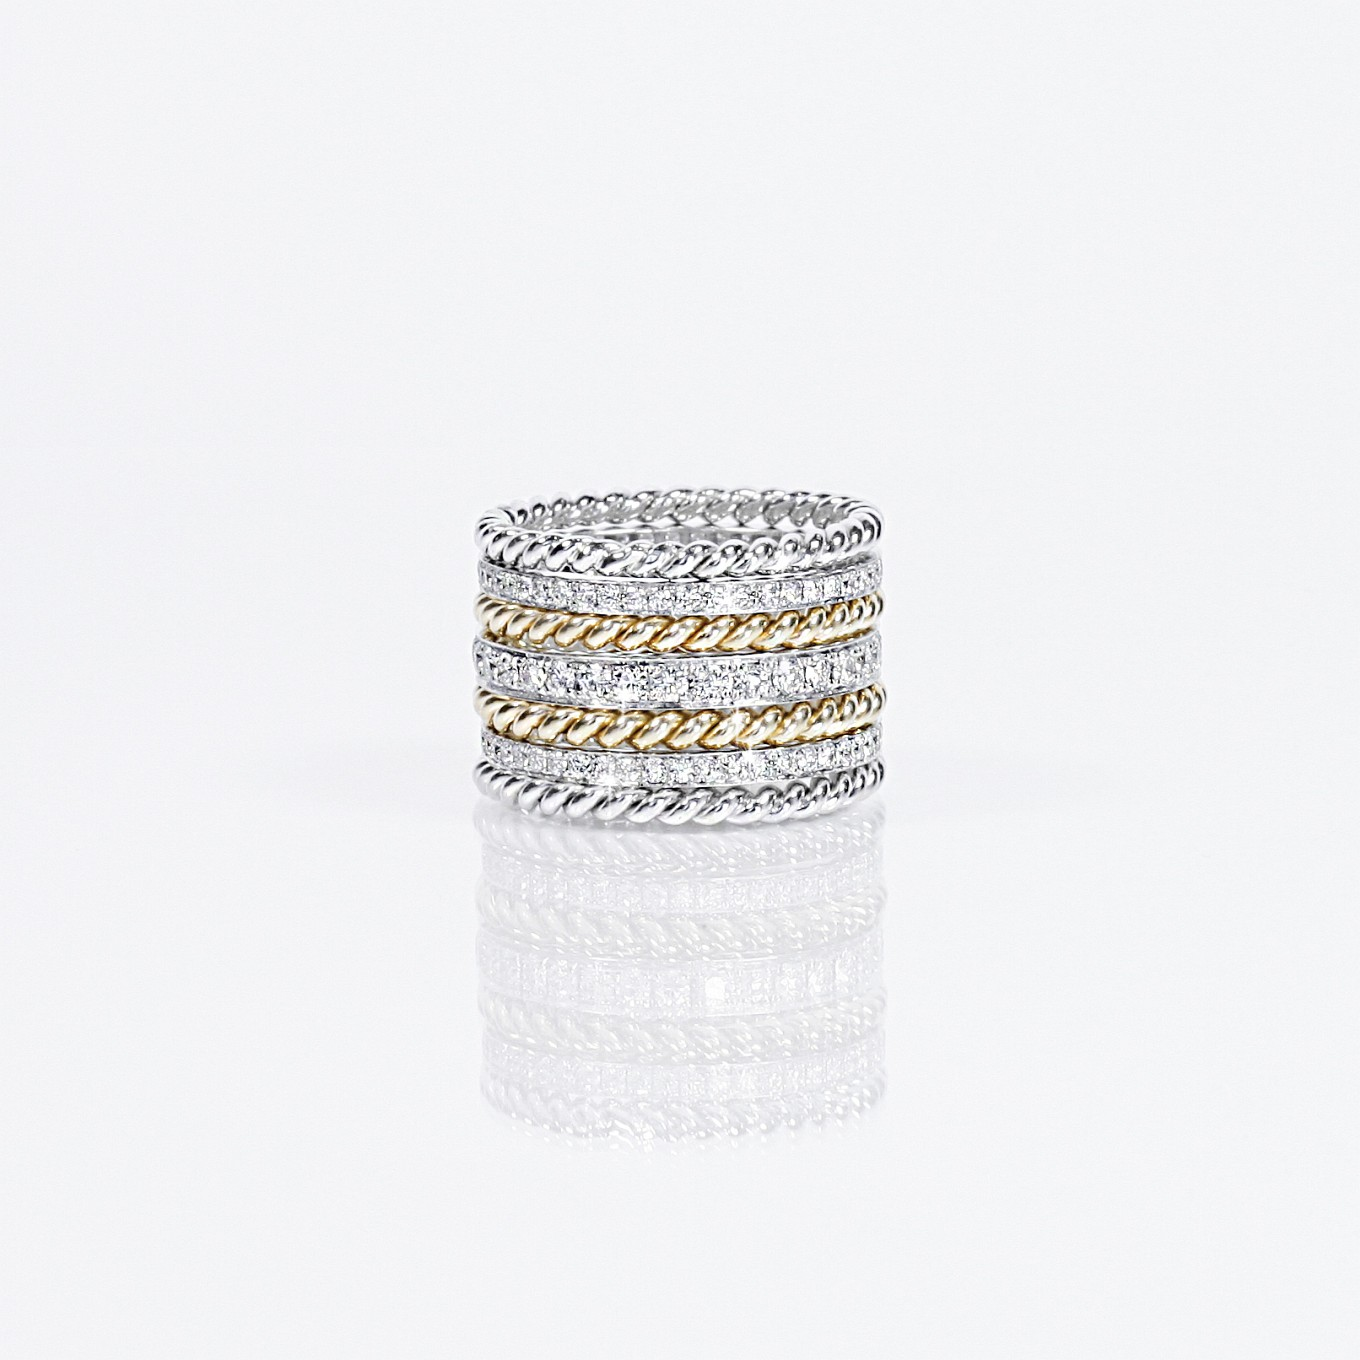 DIAMOND ETERNITY BANDS WITH GOLD BRAIDED BANDS